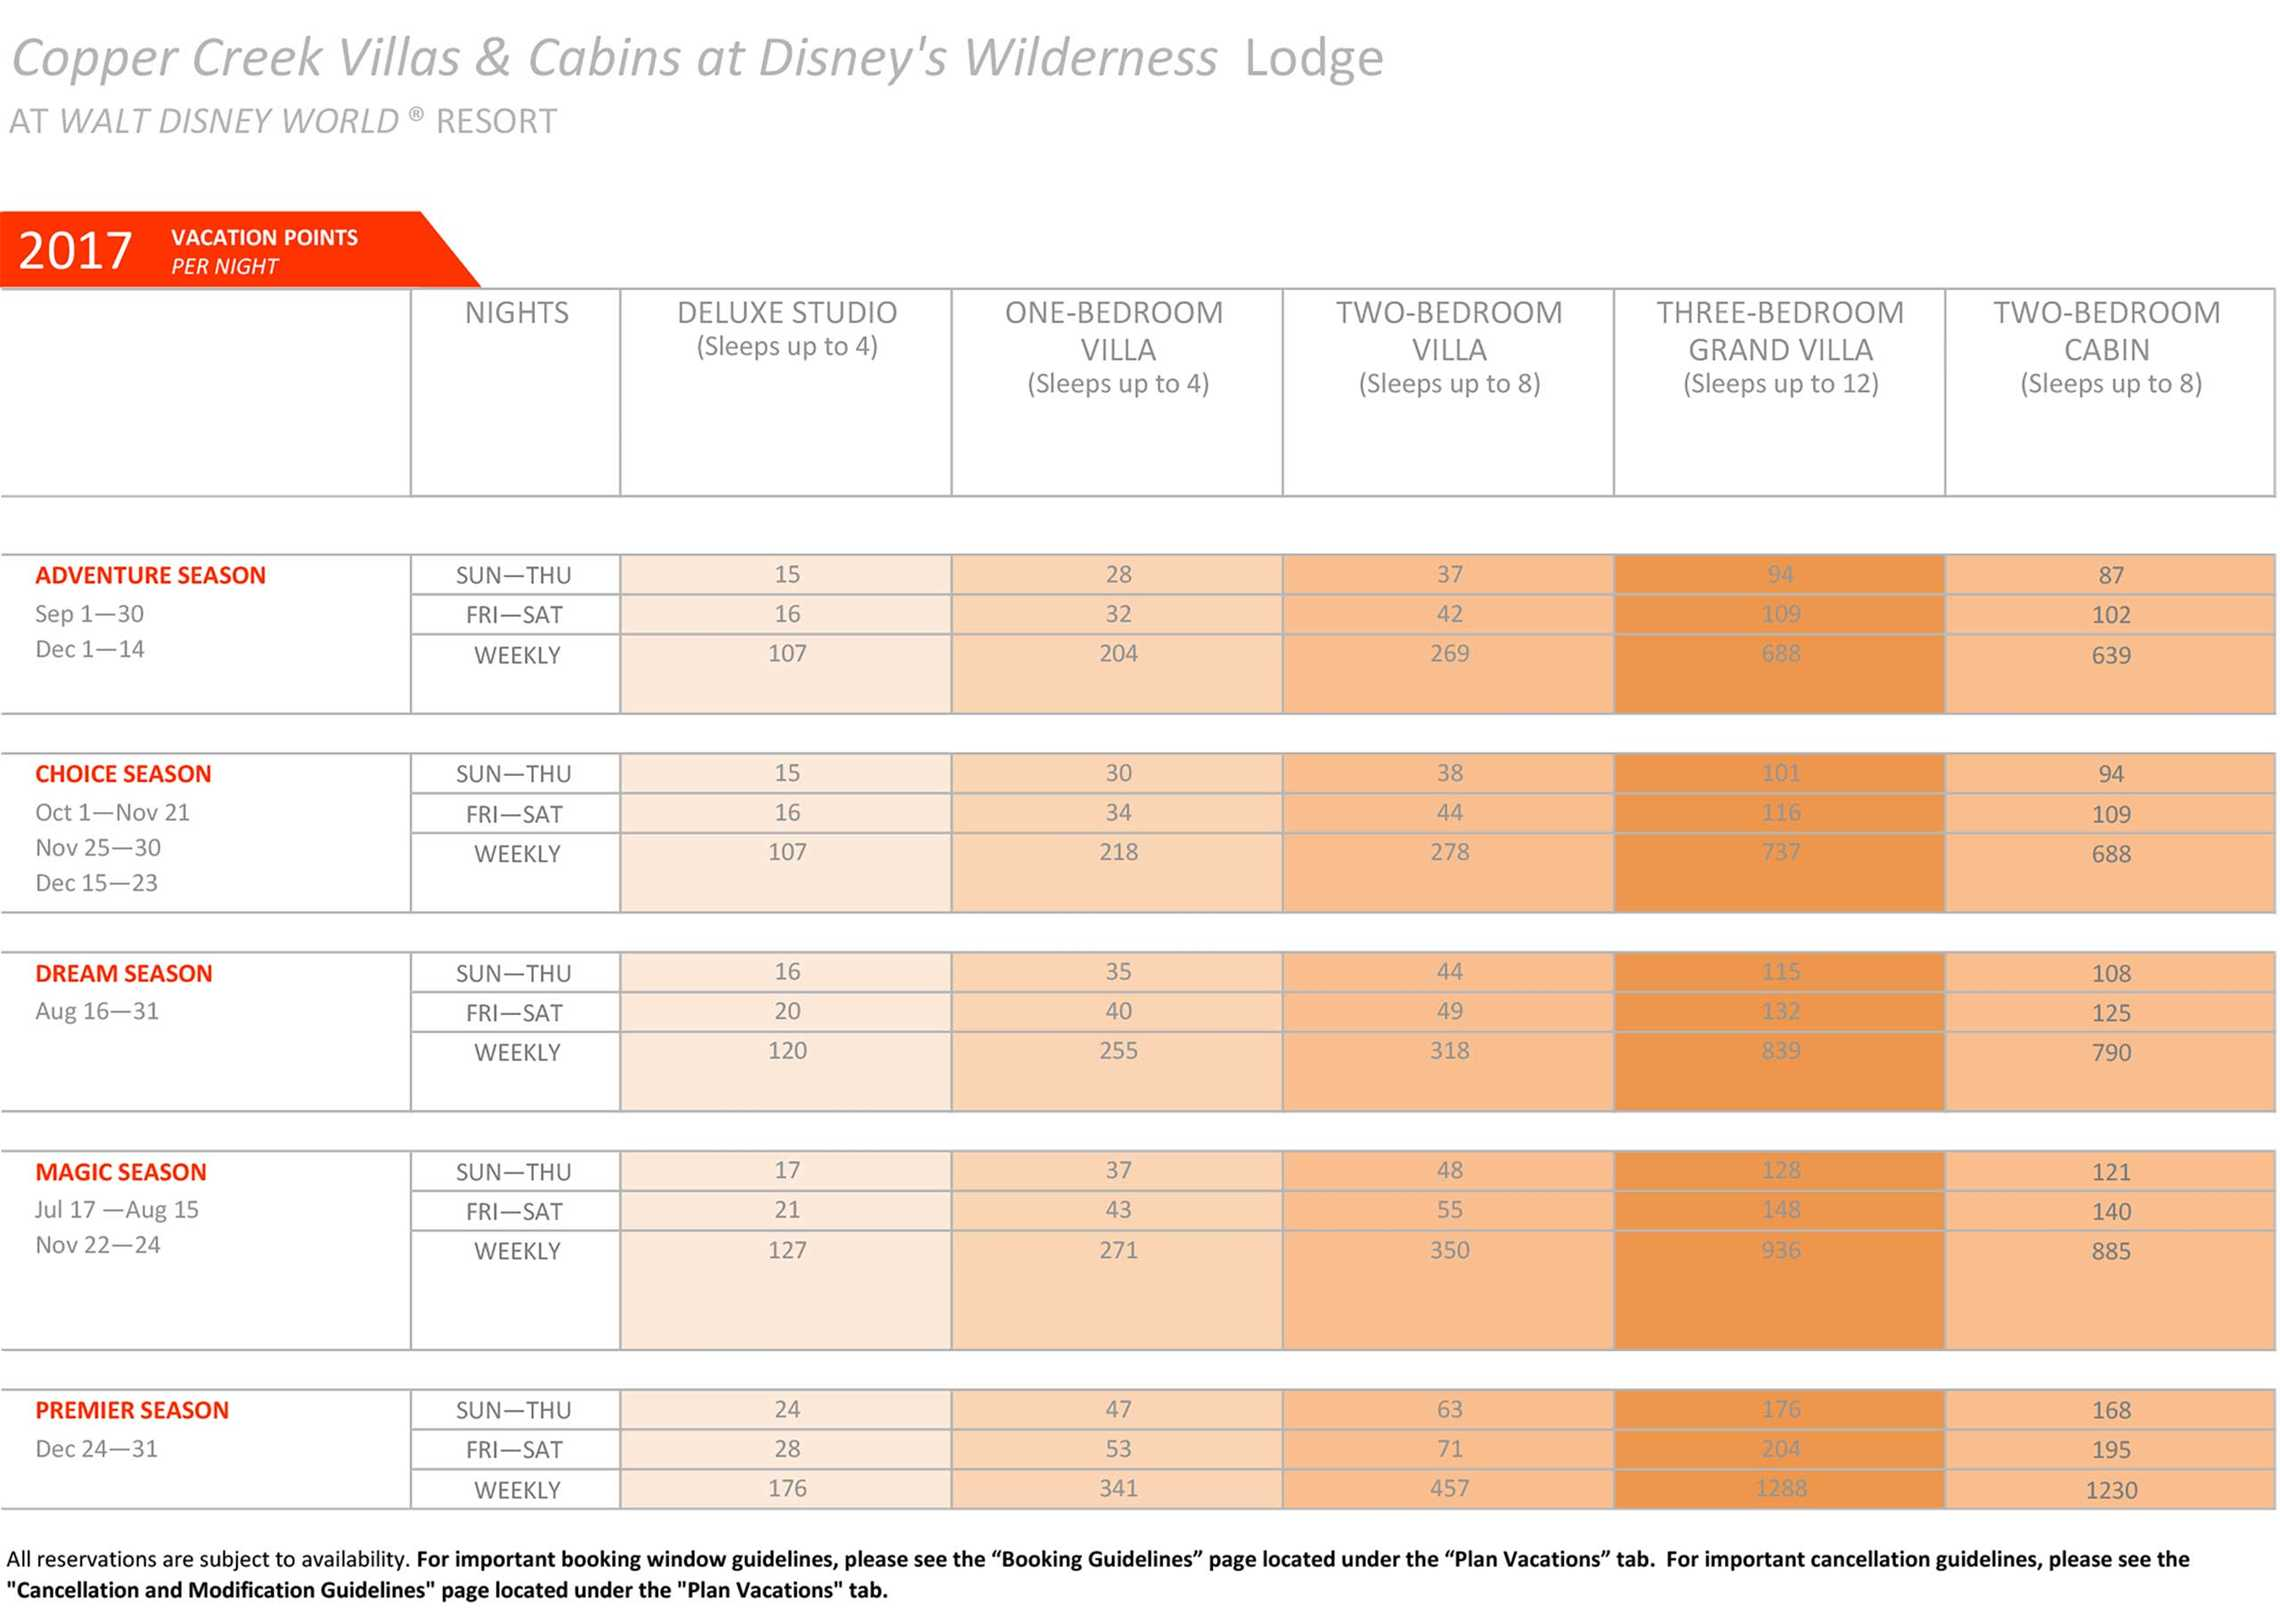 Copper Creek Villas and Cabins at Disney's Wilderness Lodge DVC points chart